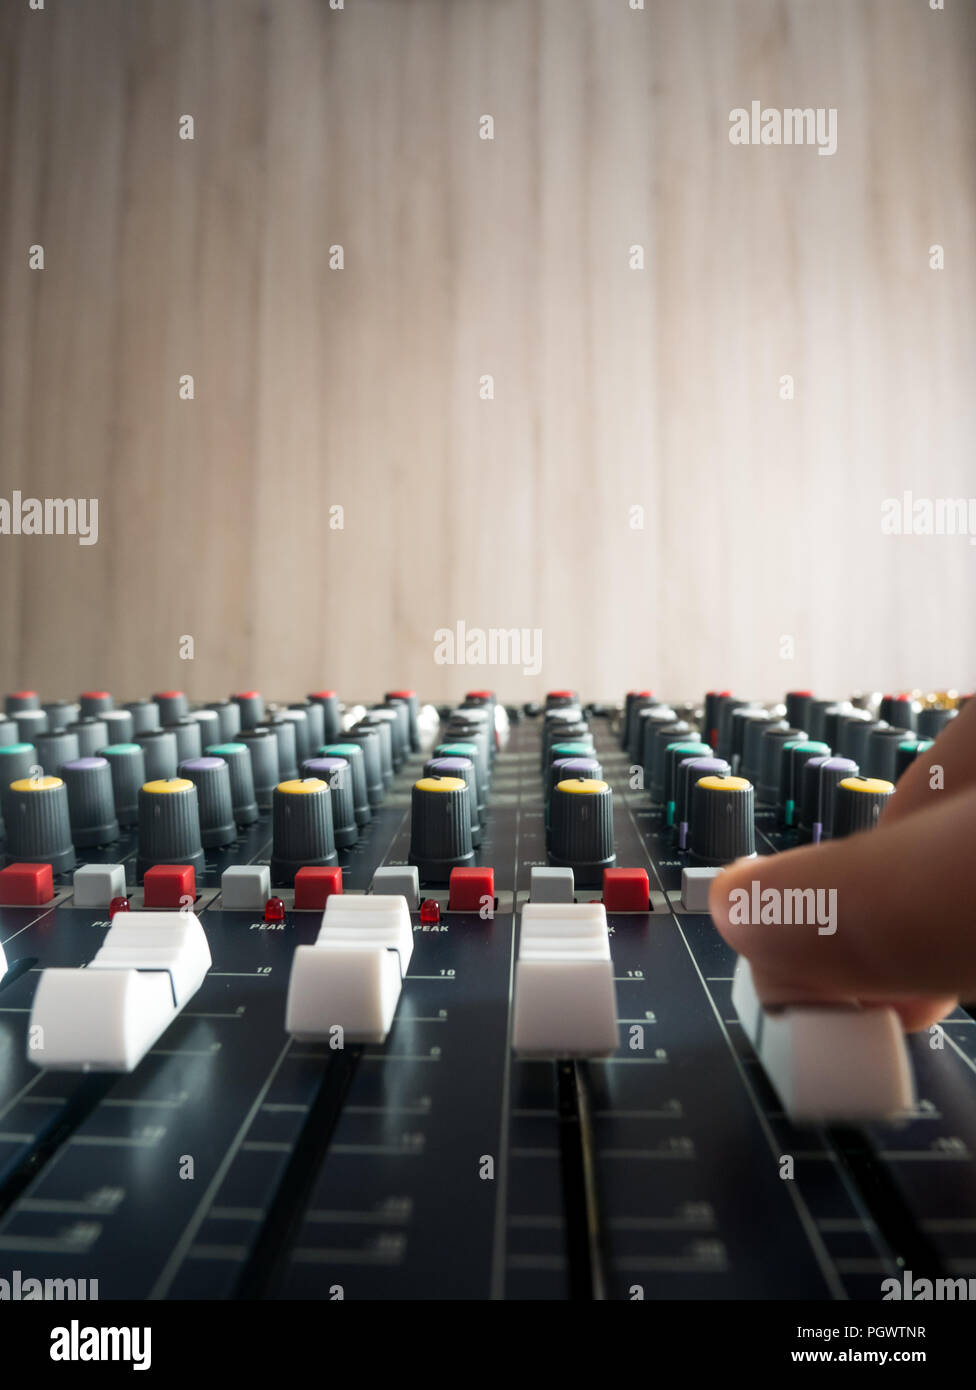 Producing music in studio on audio mixer close up - Stock Image